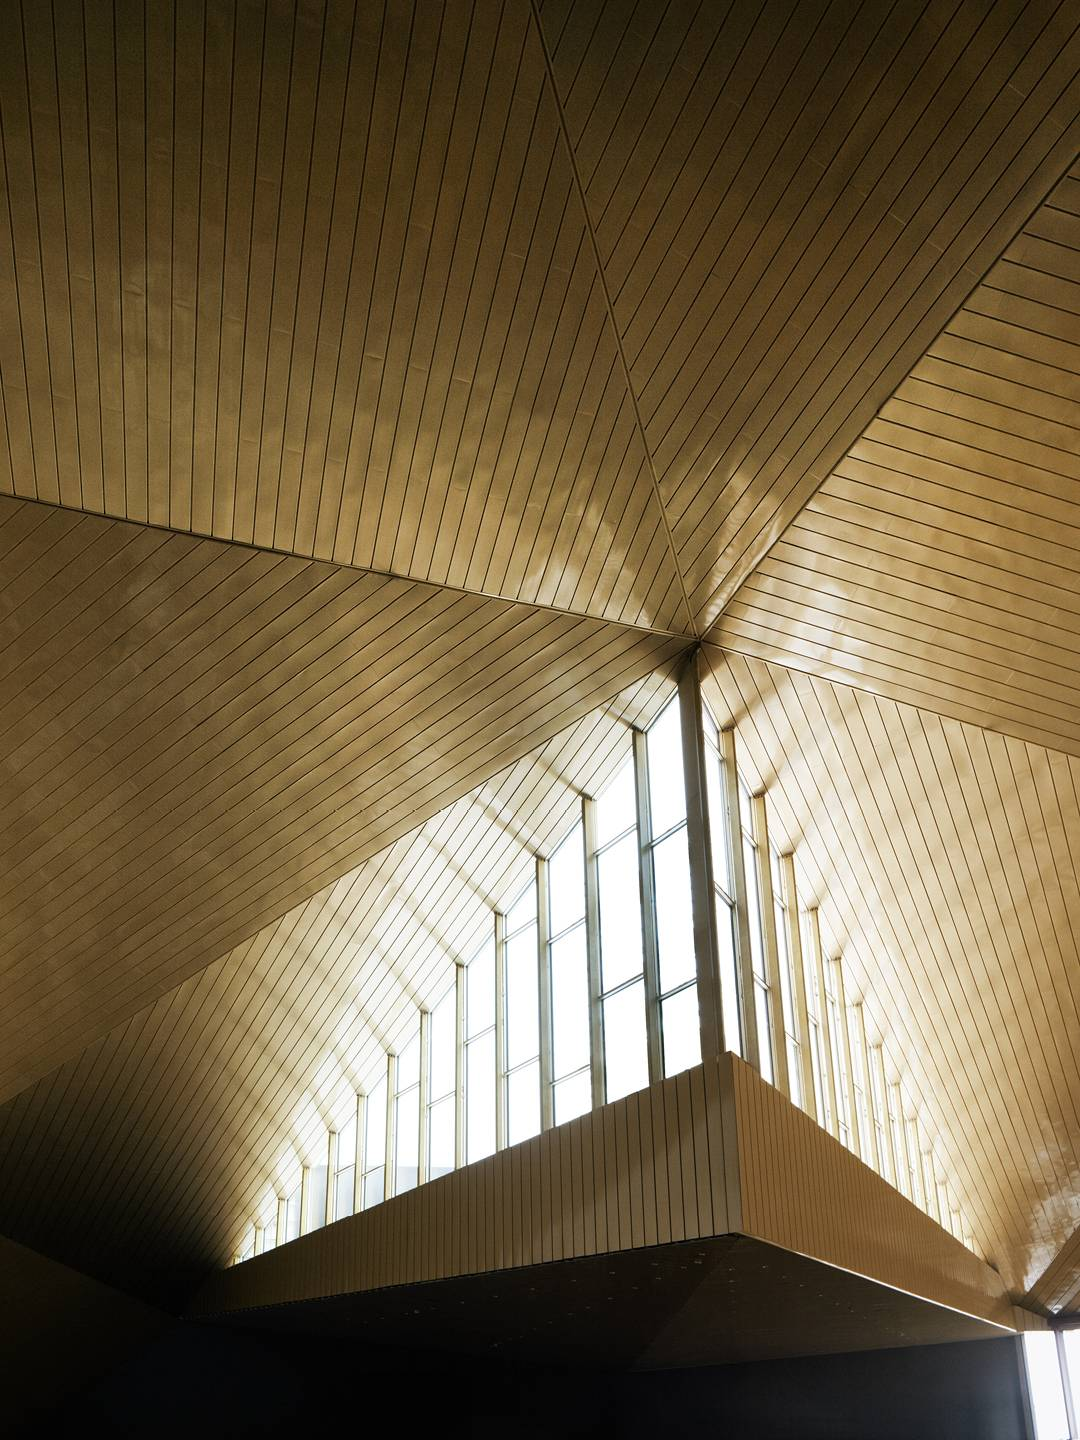 SKYLIGHT ABOVE CONFERENCE LOBBY - Clarion Hotel & Congress - SPOL Architects